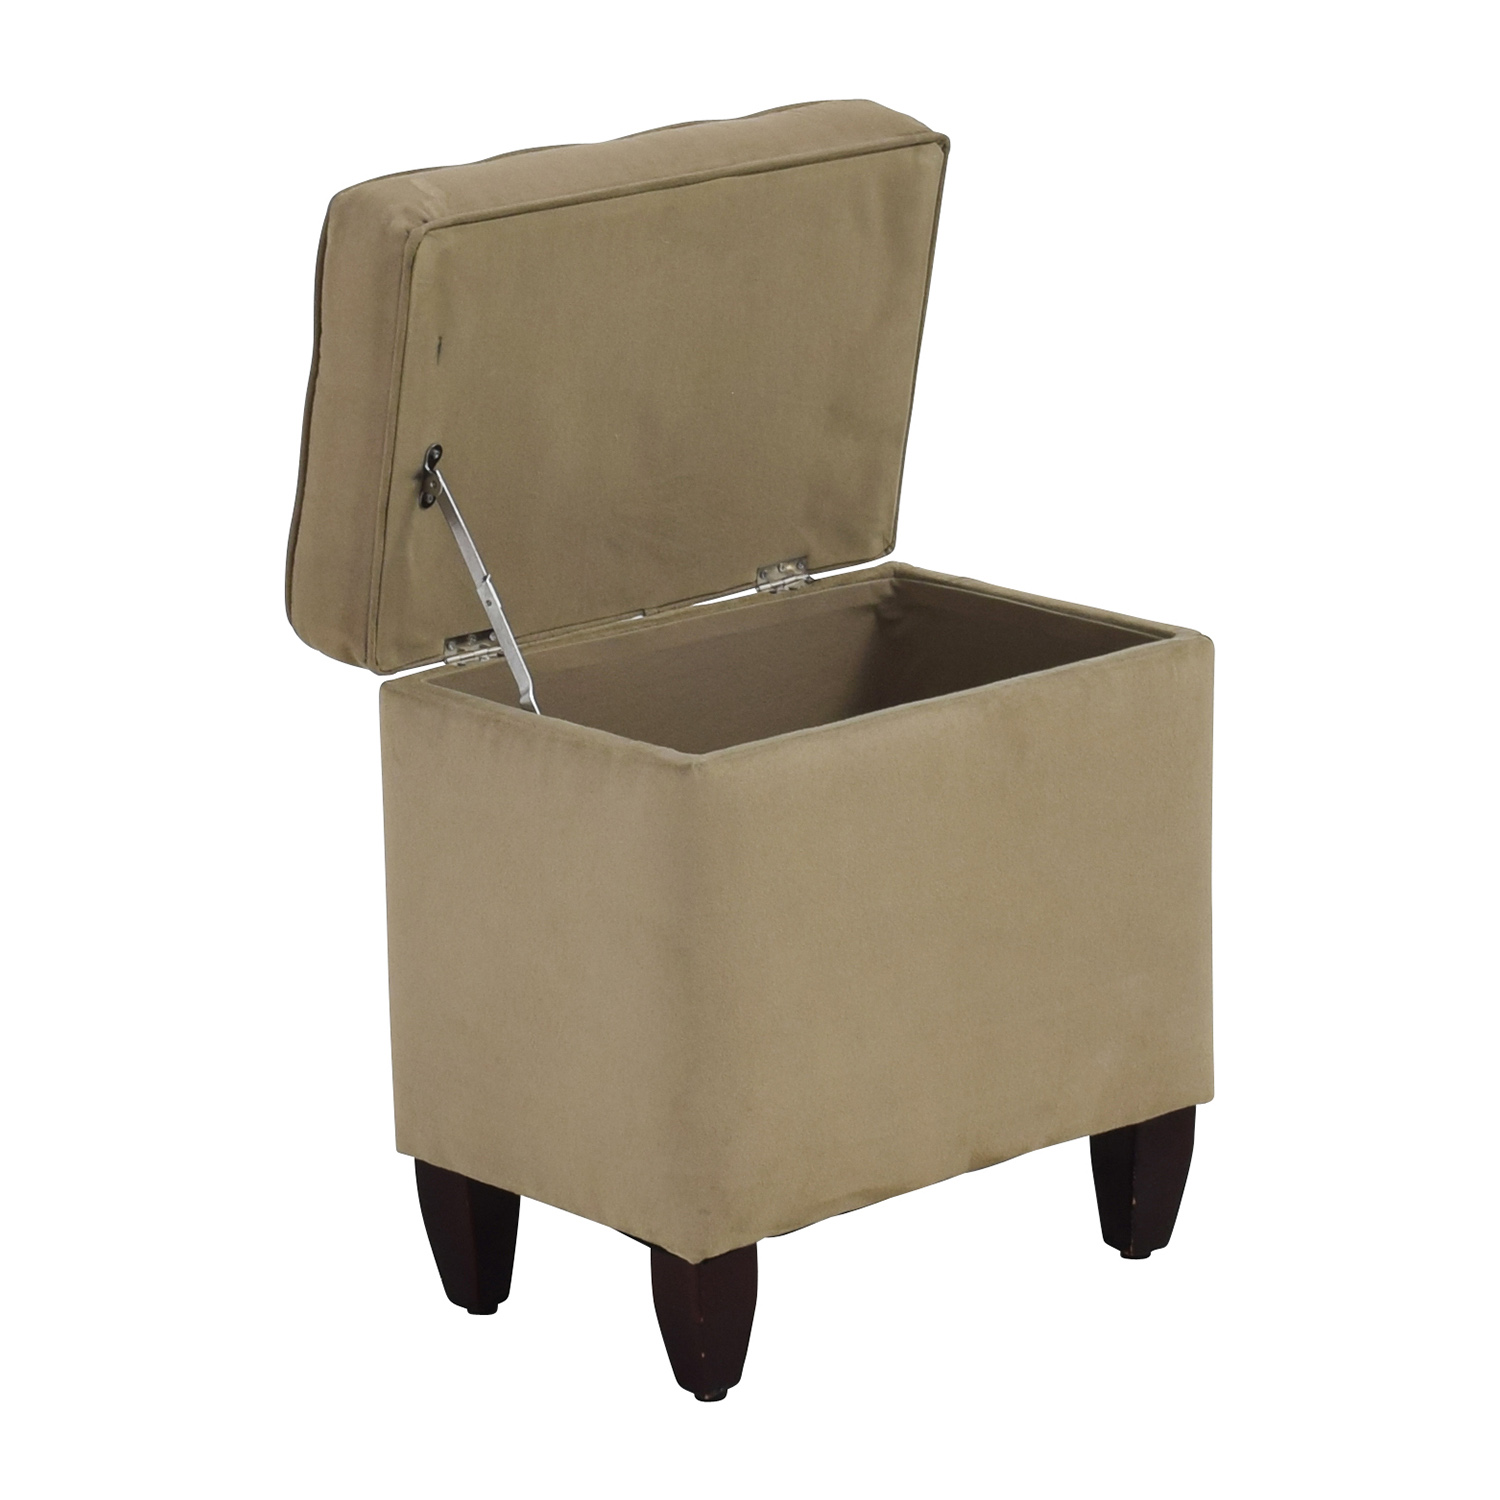 80 off beige tufted ottoman with storage chairs for Furniture ottoman storage